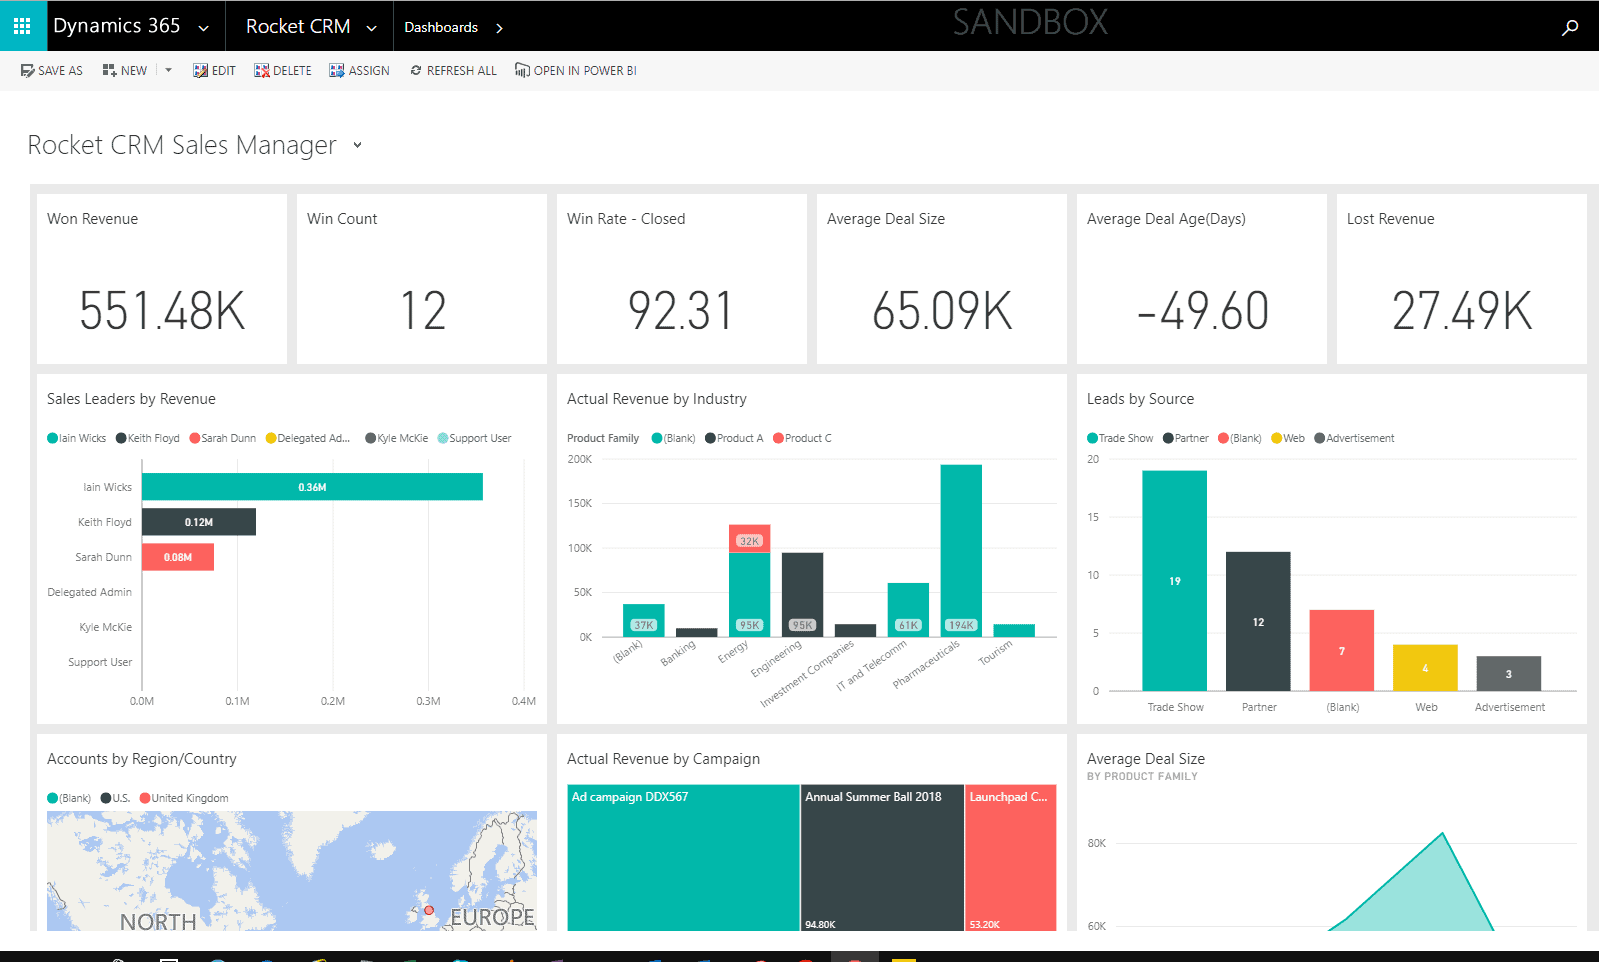 PowerBI Reporting for Rocket Launch Dynamics 365